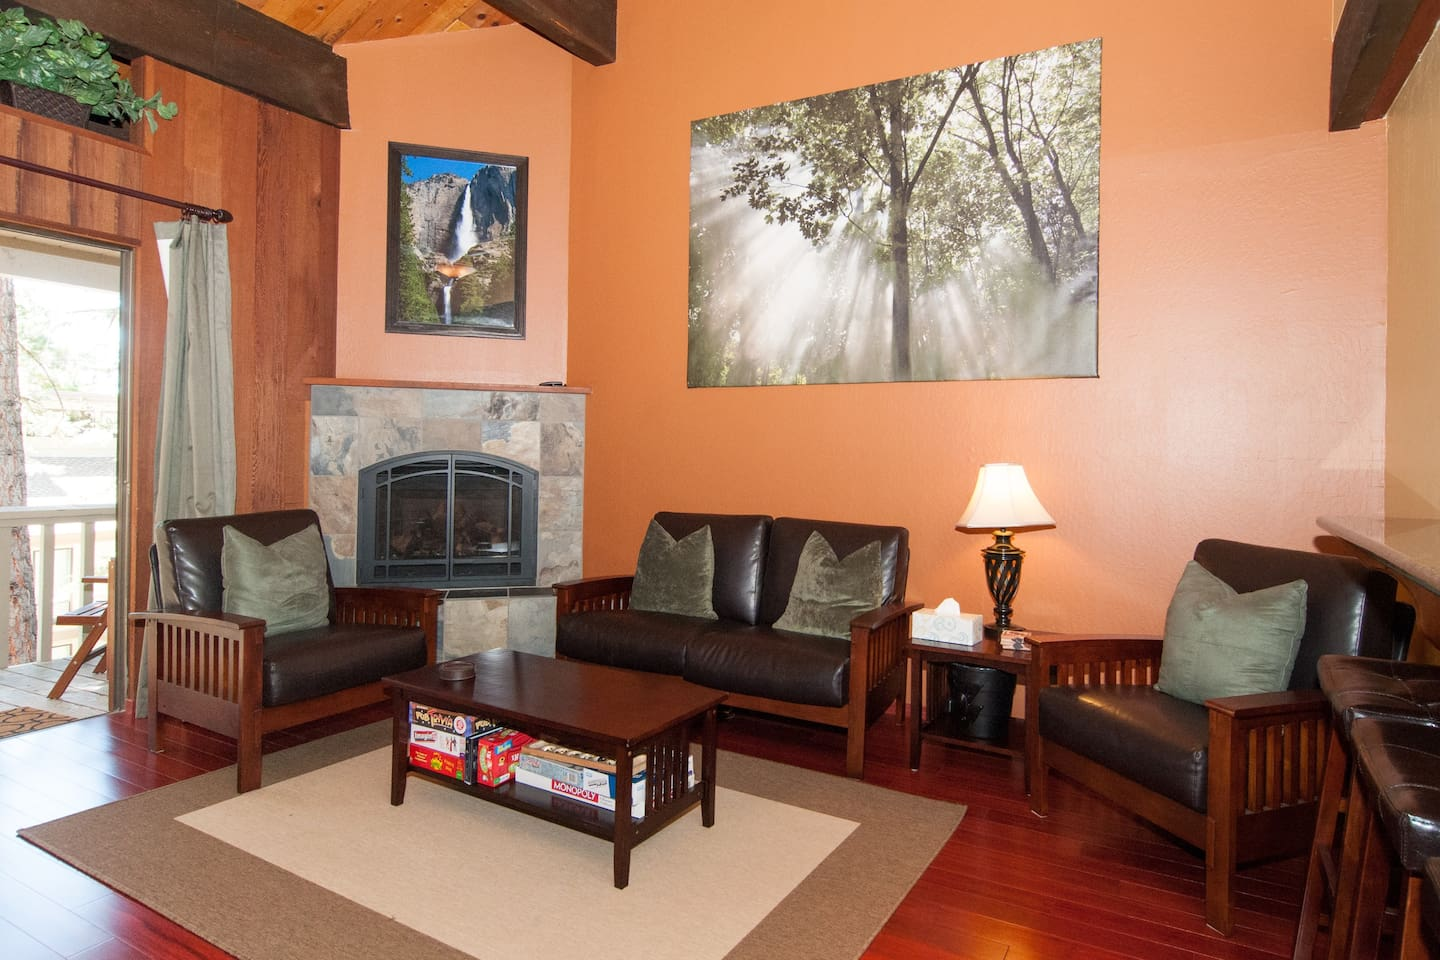 Great room with beautiful authentic redwood paneling and a cozy fireplace